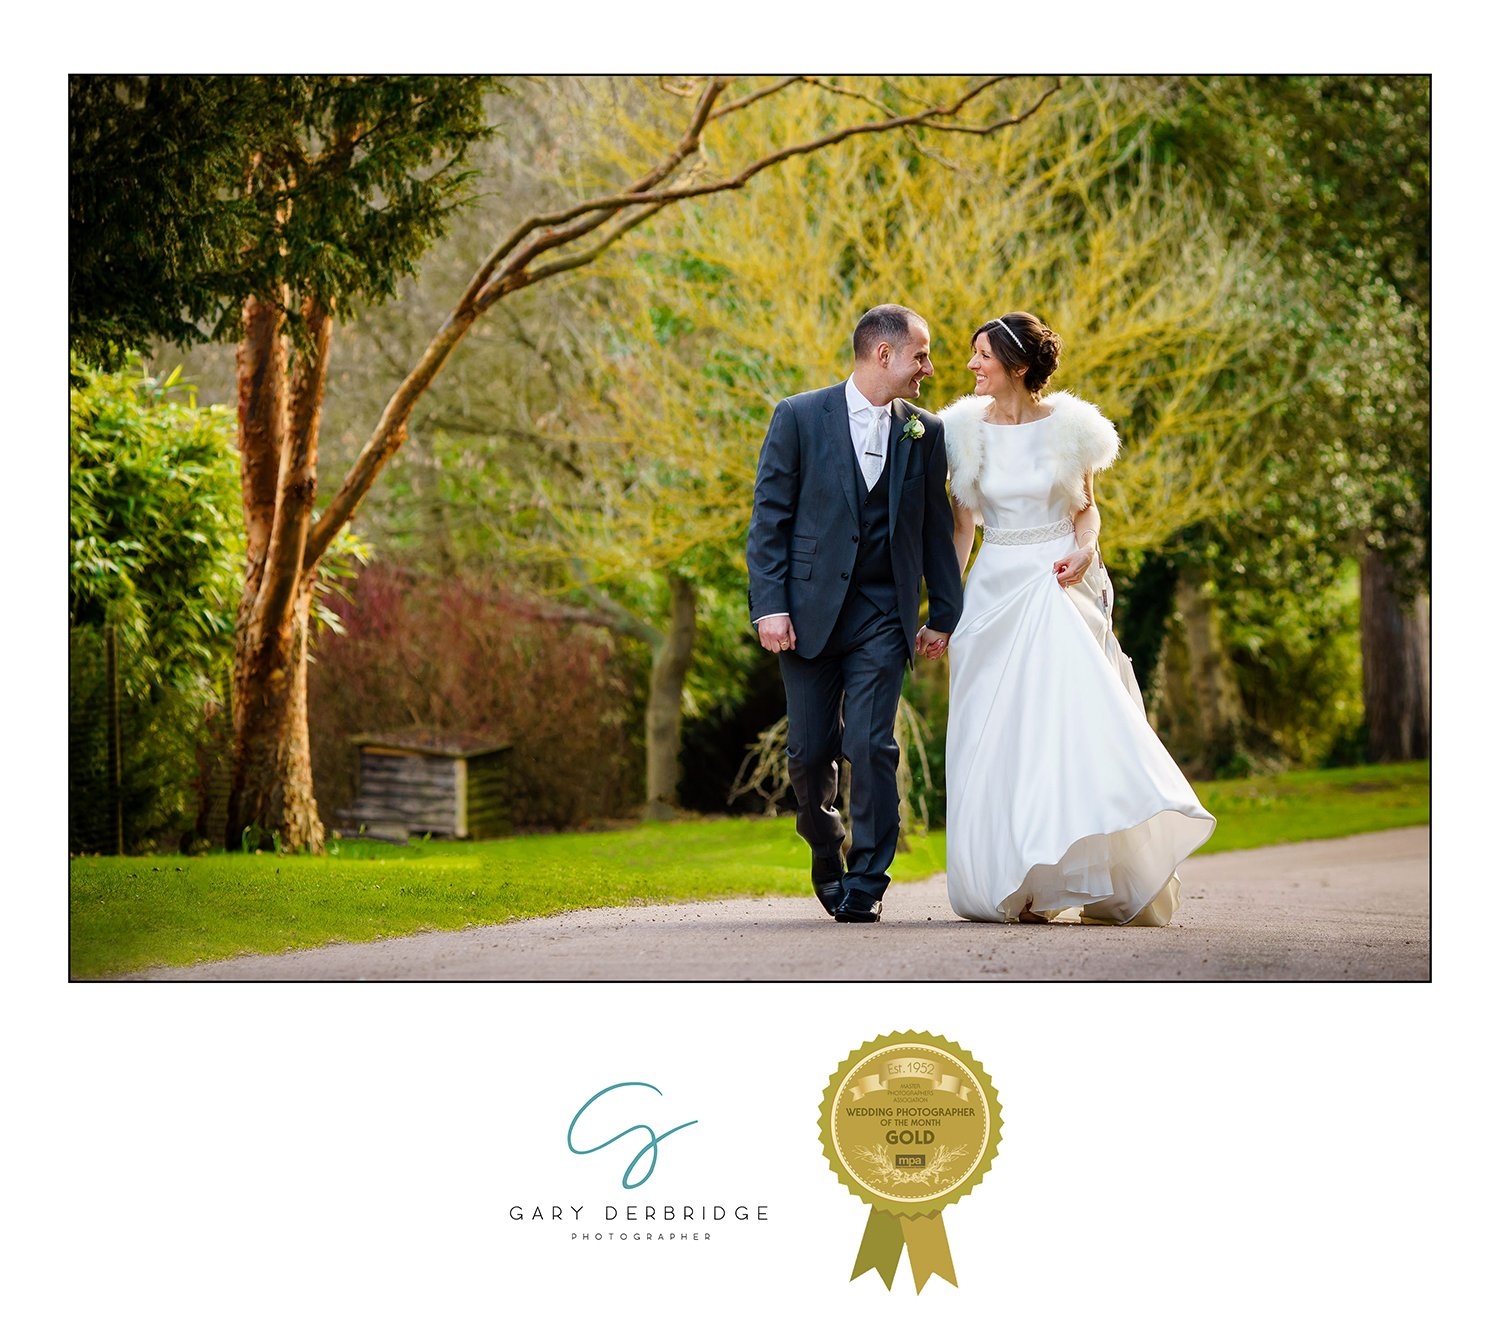 National Award Winning Wedding Photographer Gary Derbridge